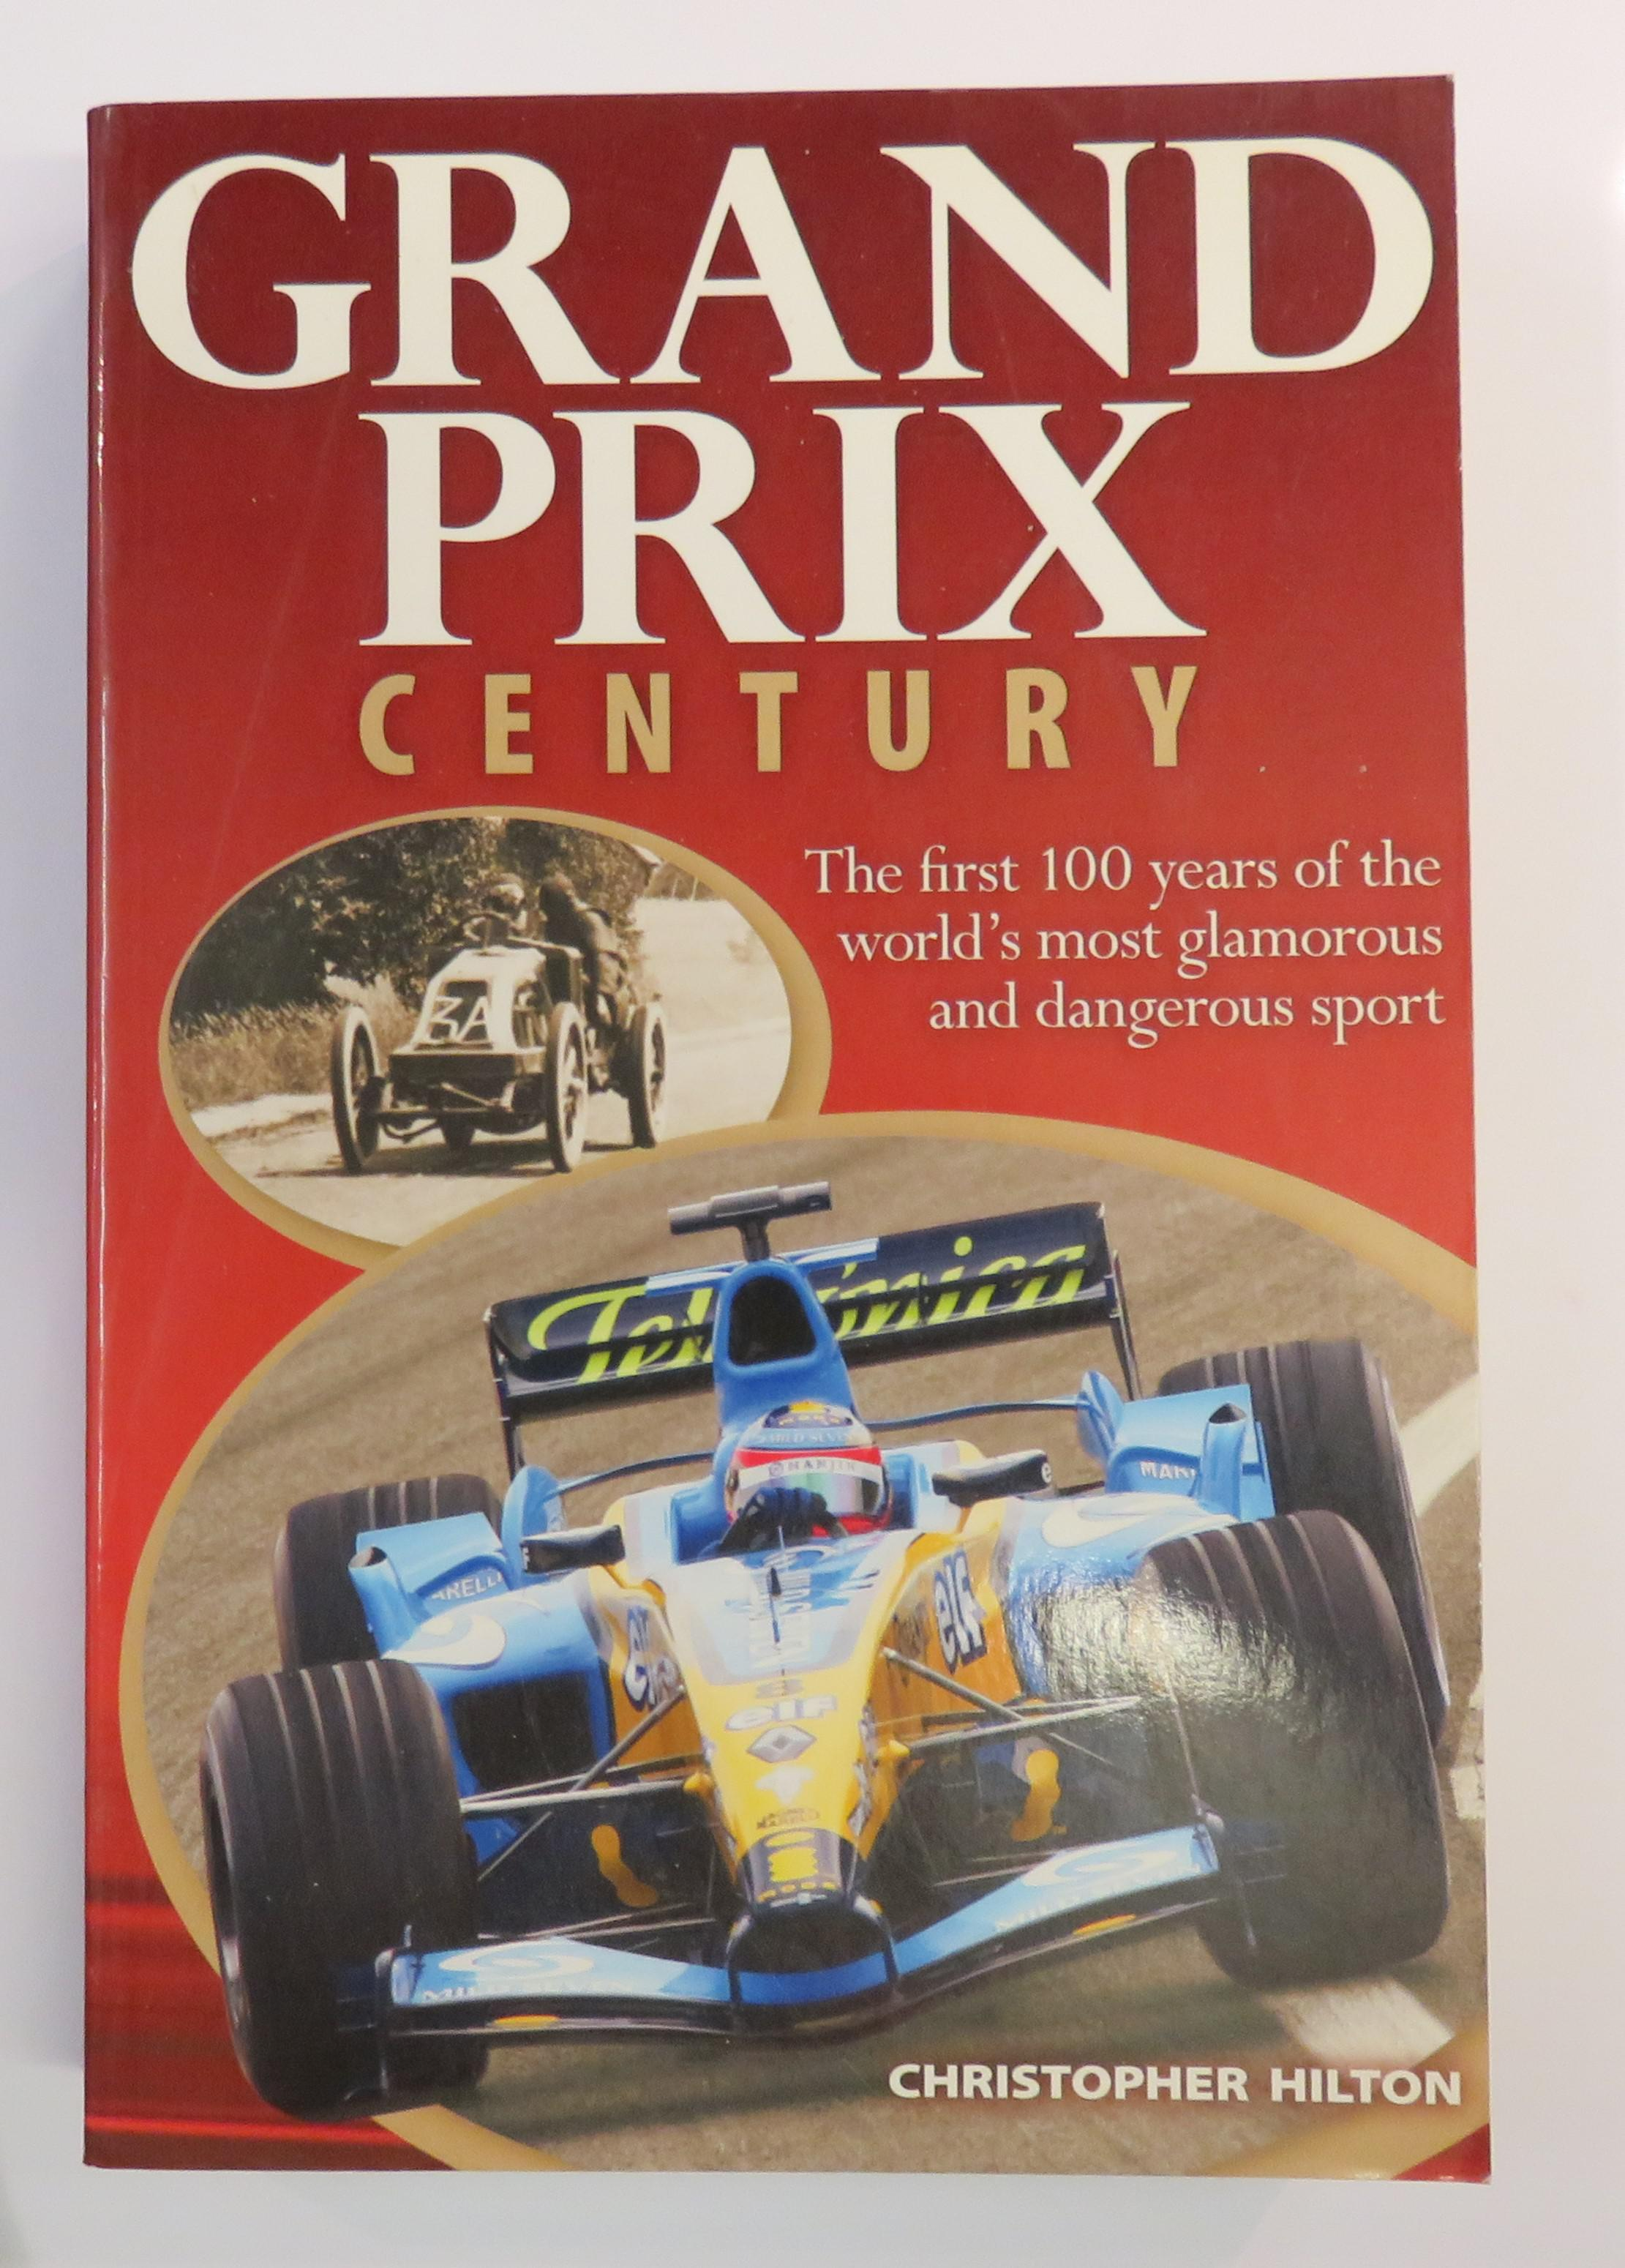 Grand Prix Century: The First 100 Years of the World's Most Glamourous and Dangerous Sport